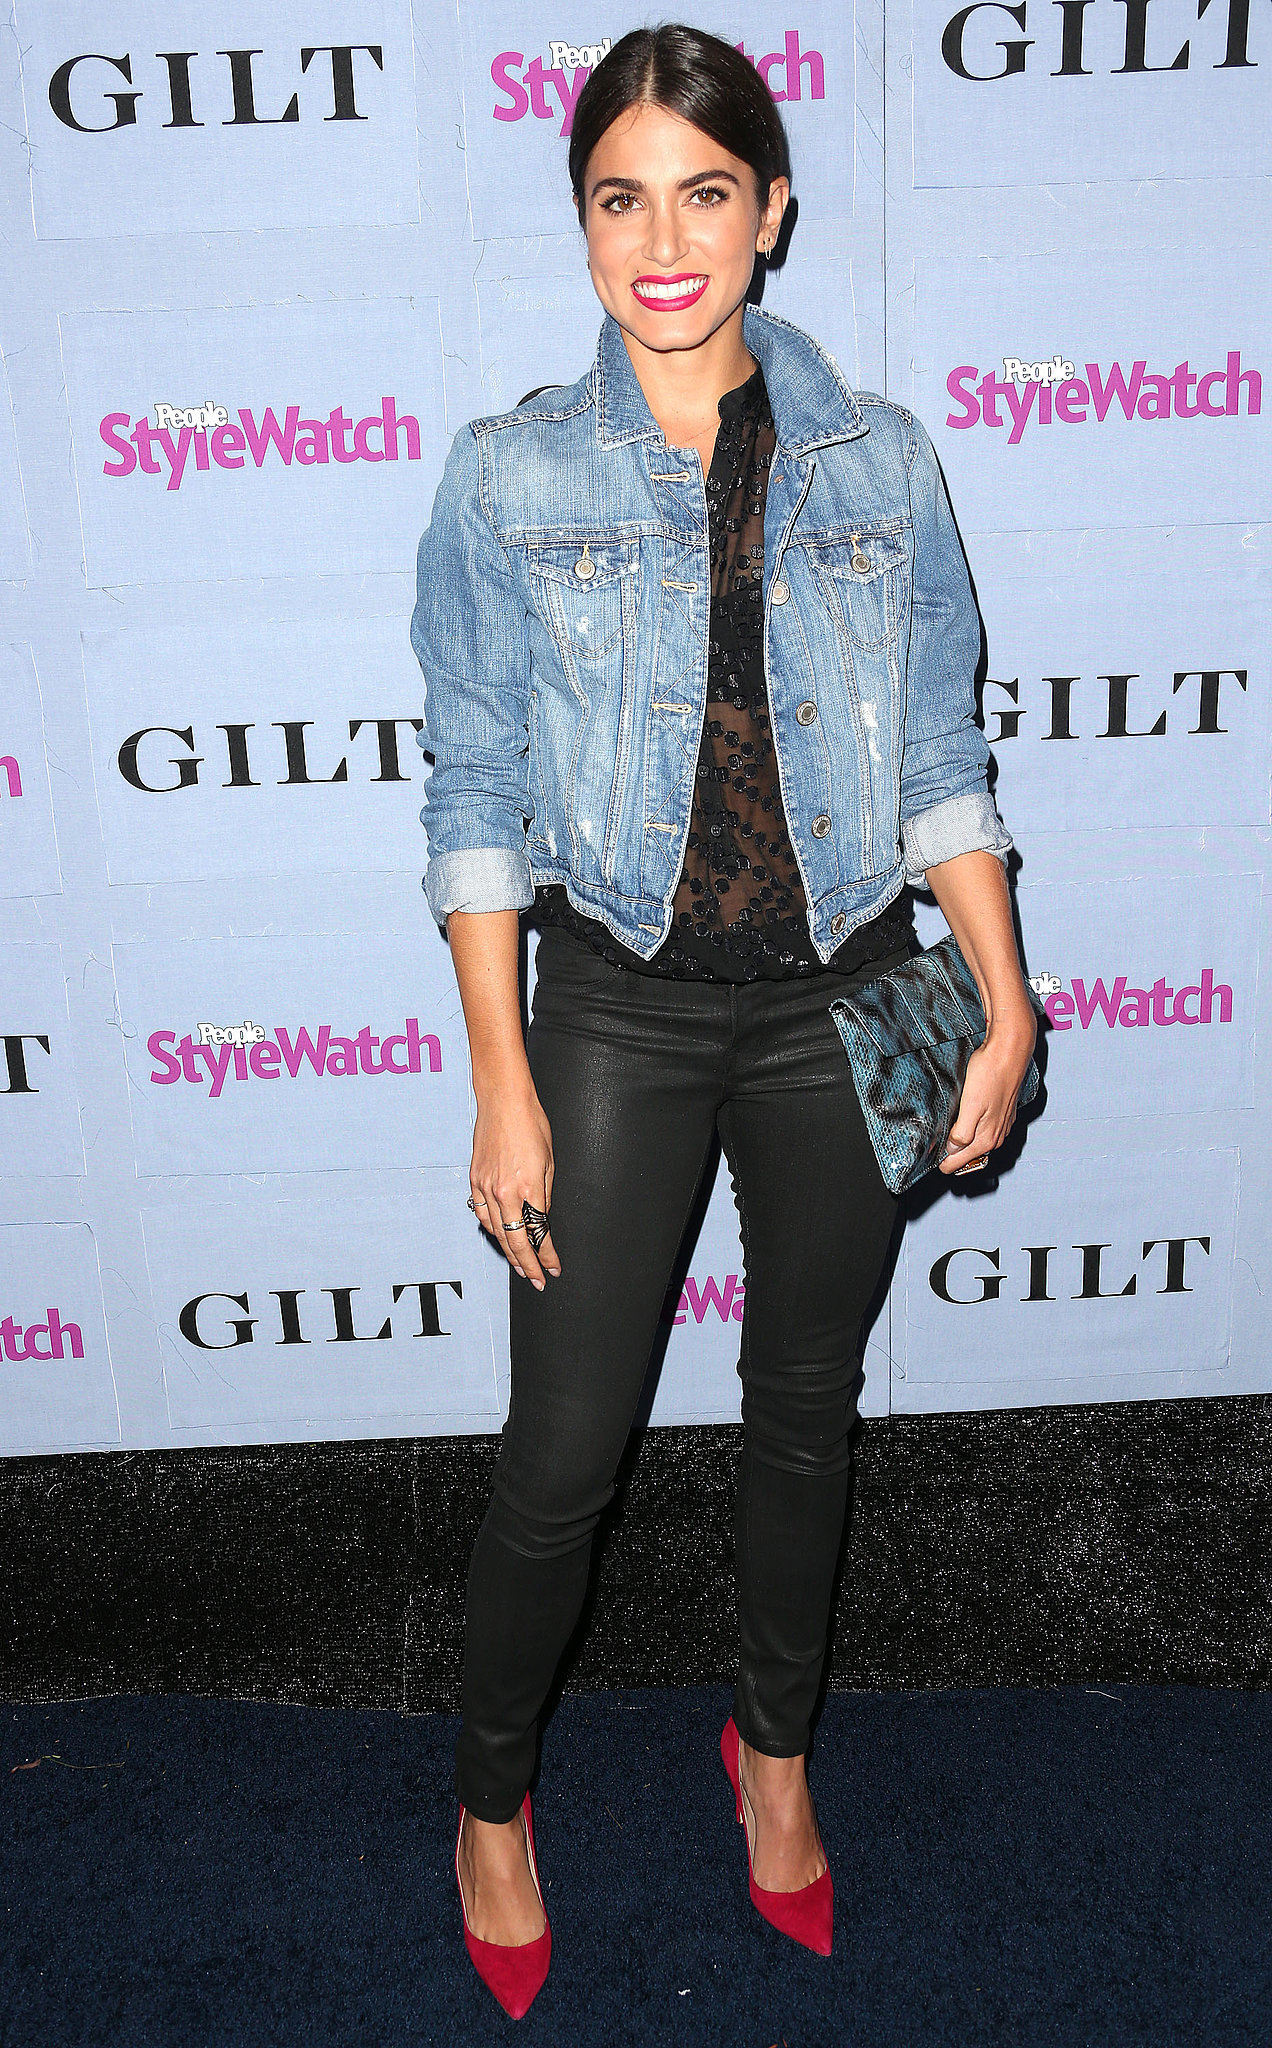 Nikki Reed played leather pants against her denim jacket for a cool effect at the People StyleWatch Denim Awards in September 2013.